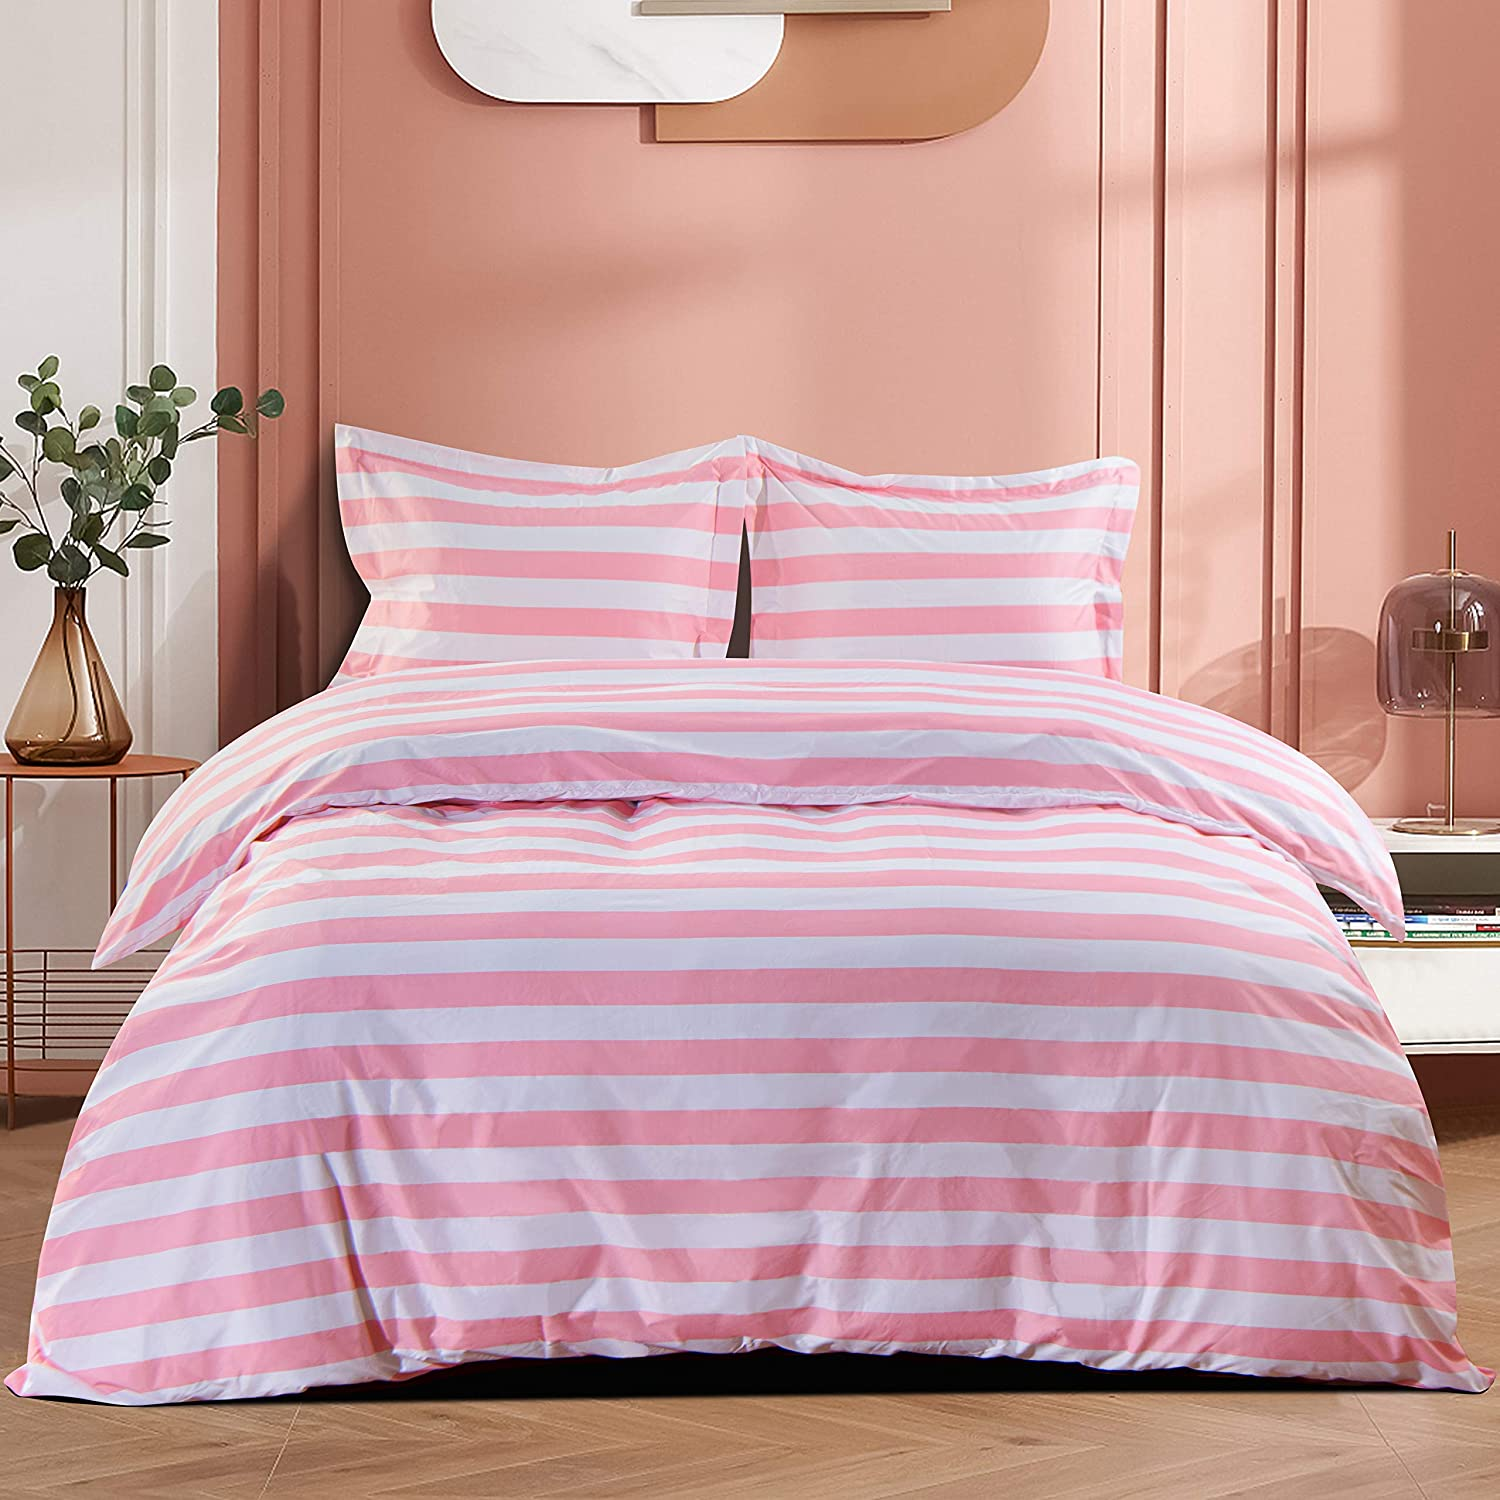 NTBAY Microfiber Twin Duvet Cover Set, 2 Pieces Ultra Soft Stripe Printed Comforter Cover Set with Zipper Closure and Corner Ties for Kids, Pink and White